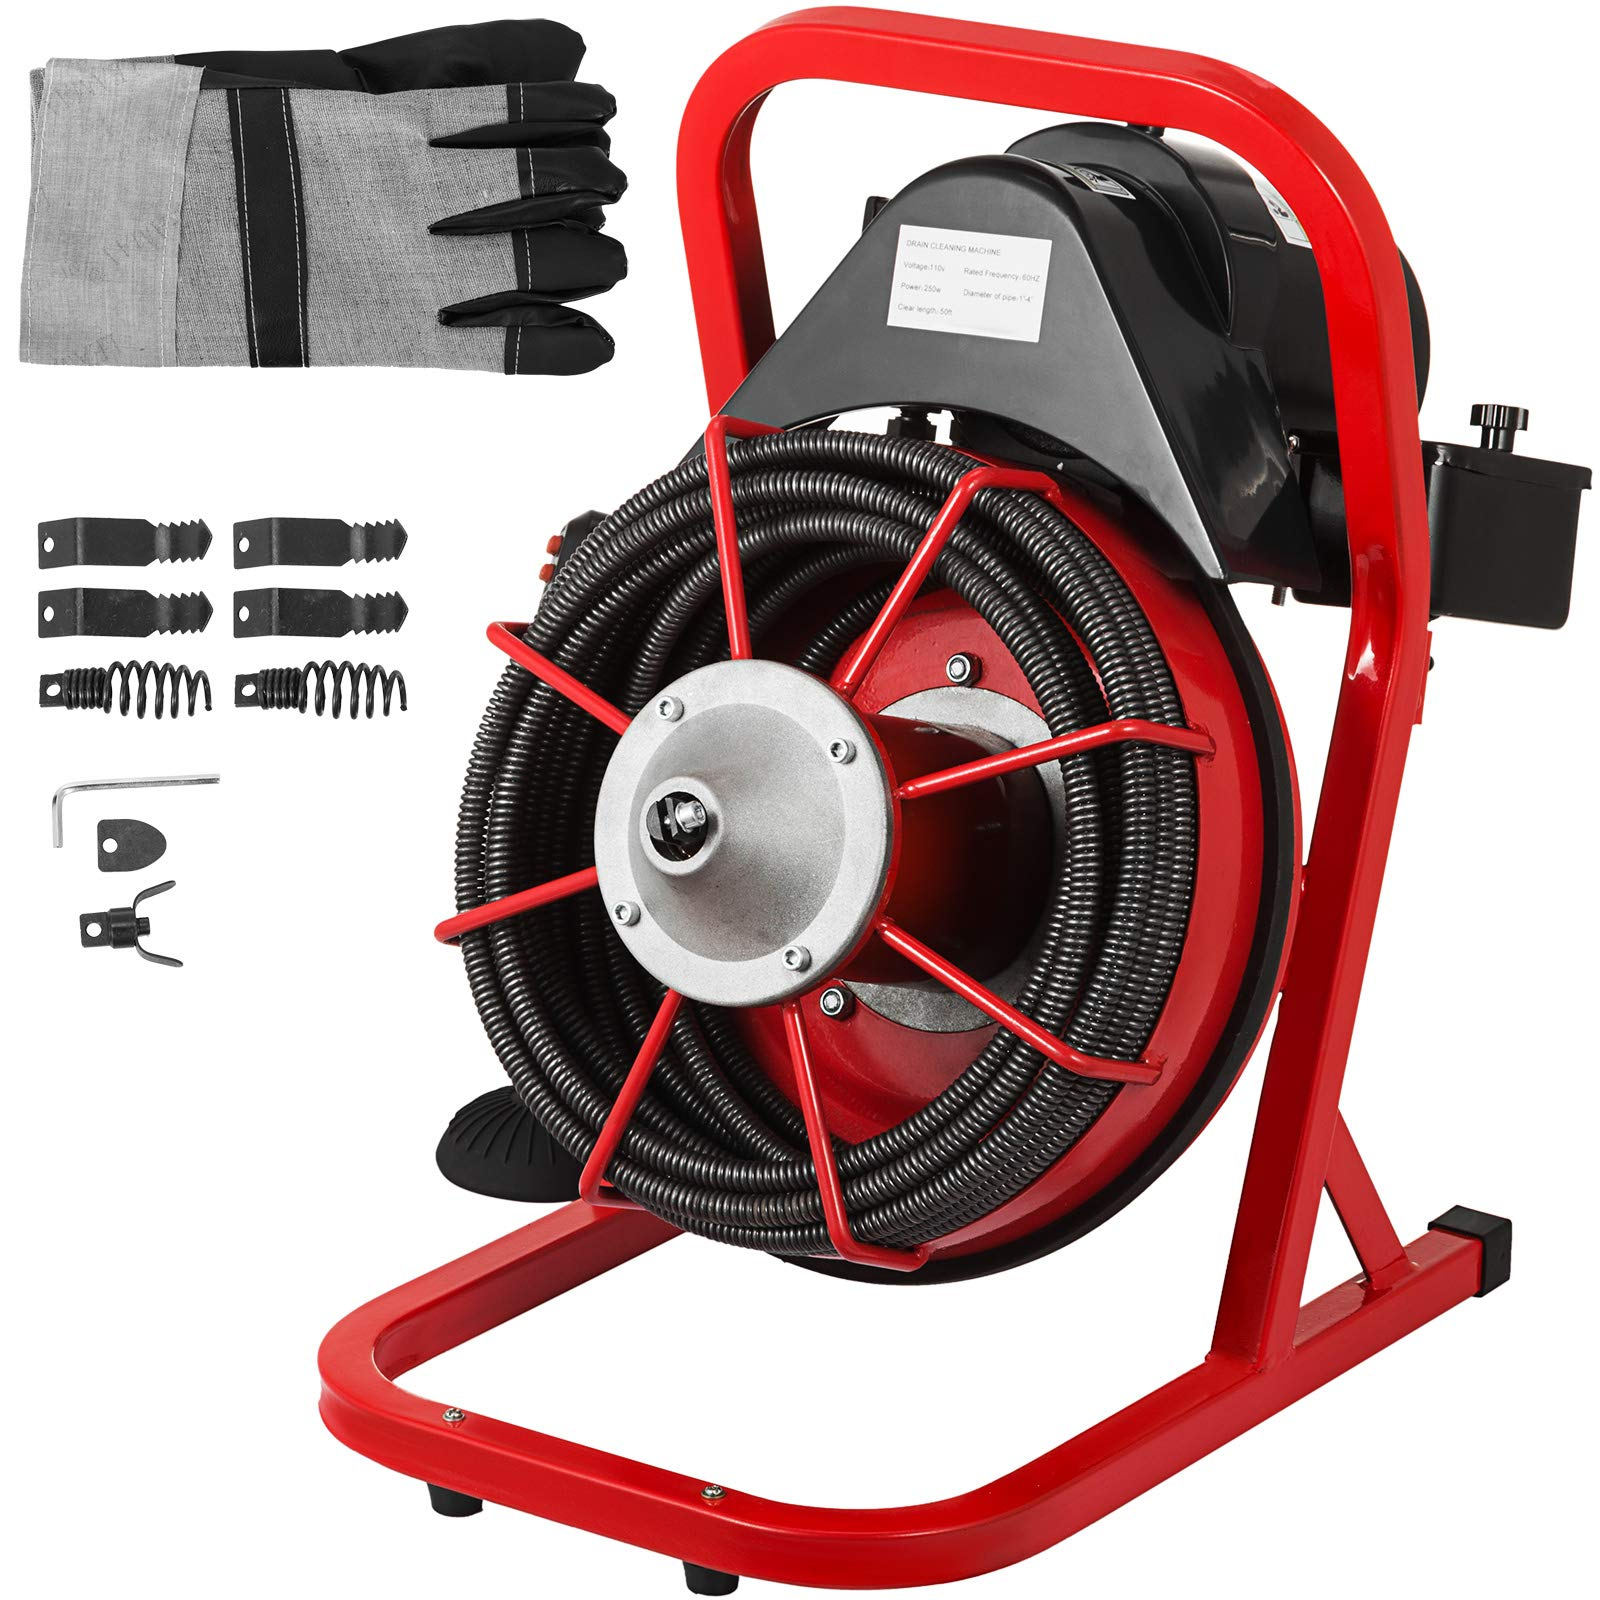 Mophorn 75 Ft x 1/2 Inch Drain Cleaner Machine fit 1 Inch (25mm) to 4 Inch(100mm) Pipes Drain Cleaning Machine Portable Electric Drain Auger with Cutters Glove Drain Auger Cleaner Sewer Snake by Mophorn